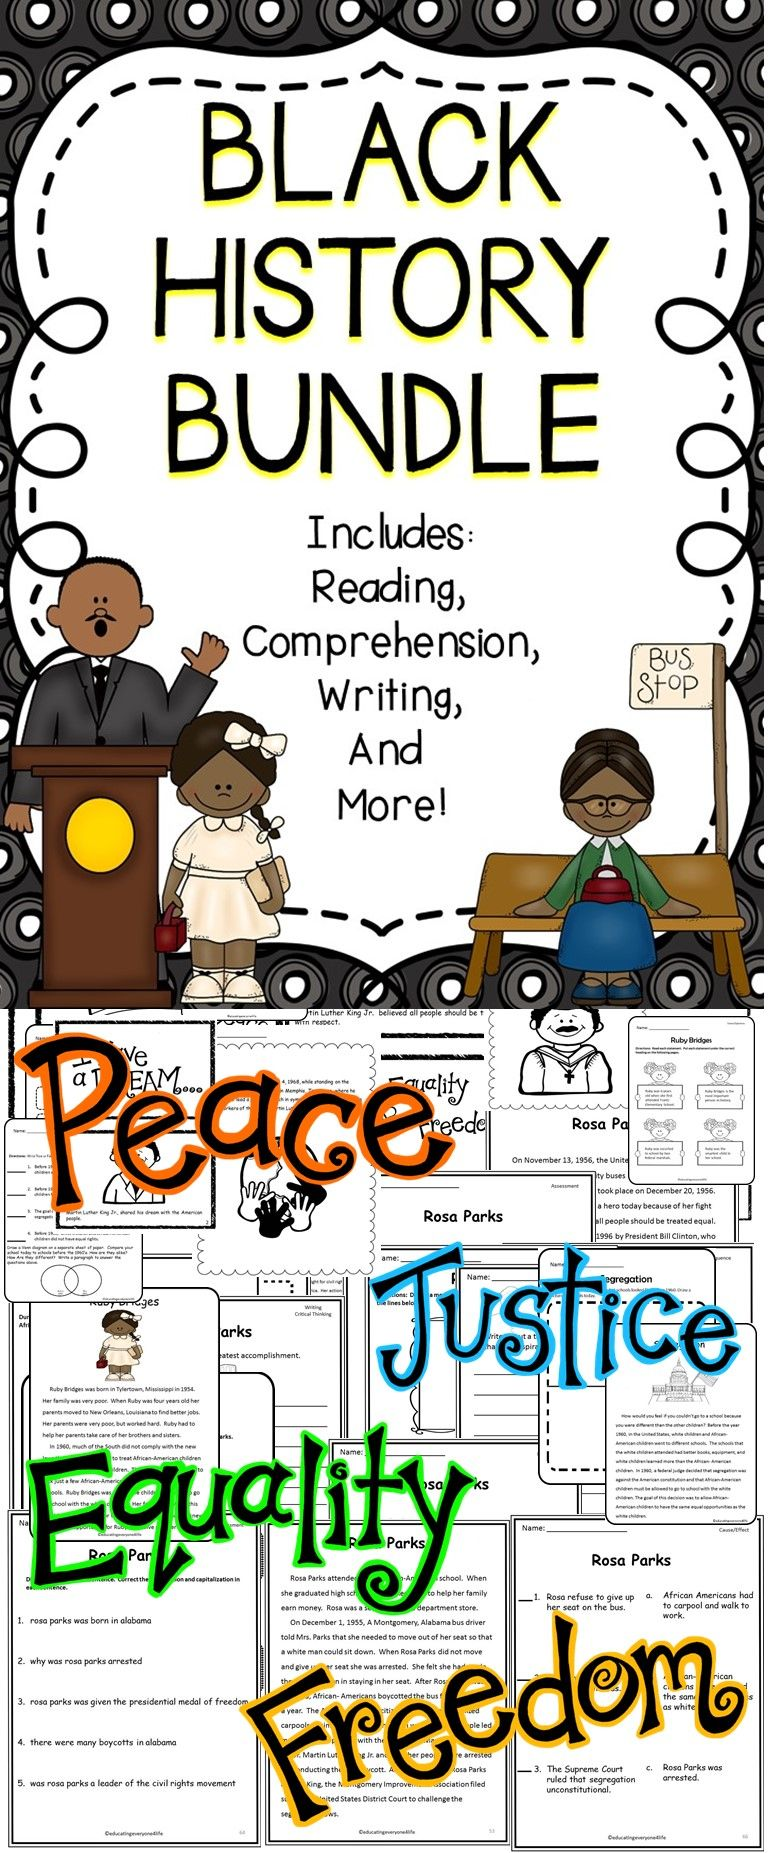 Black History - Celebrate Black History Month With This Engaging Educational Resource. This black history bundle includes: Reading Comprehension, Graphic Organizers, Assessments, Writing Activities, and More!